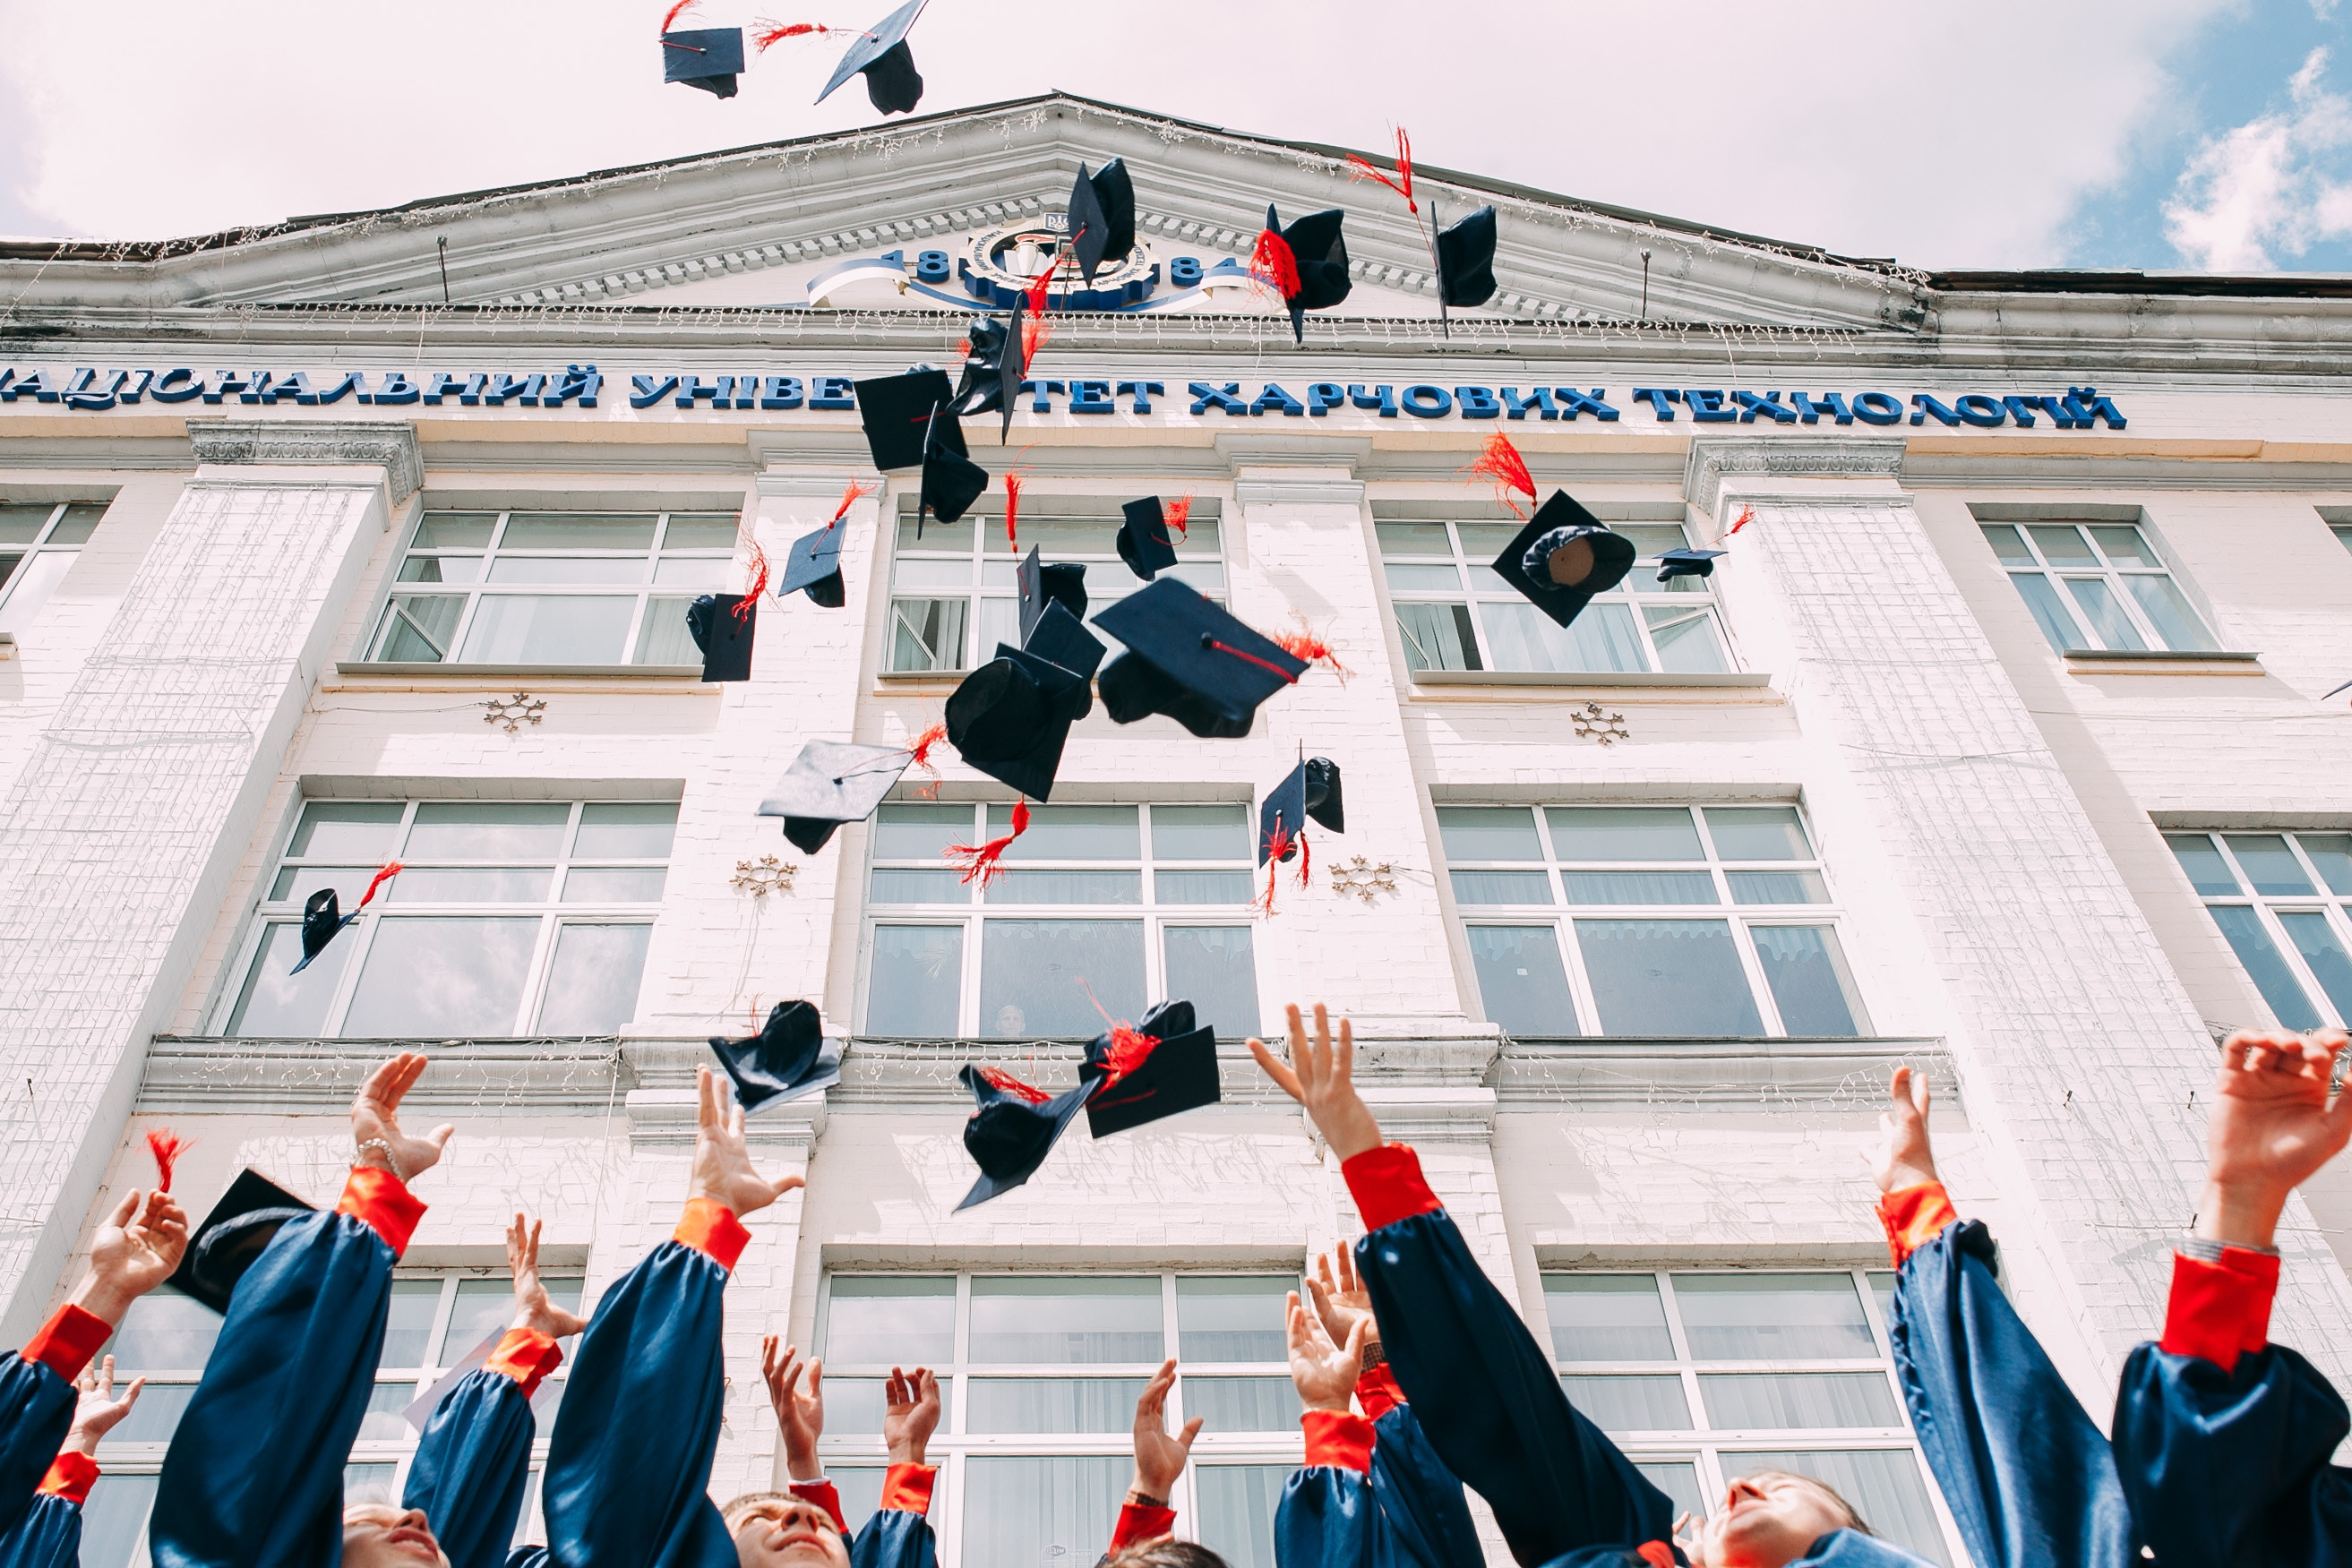 Students throw their graduation caps up in the air to celebrate their achievements